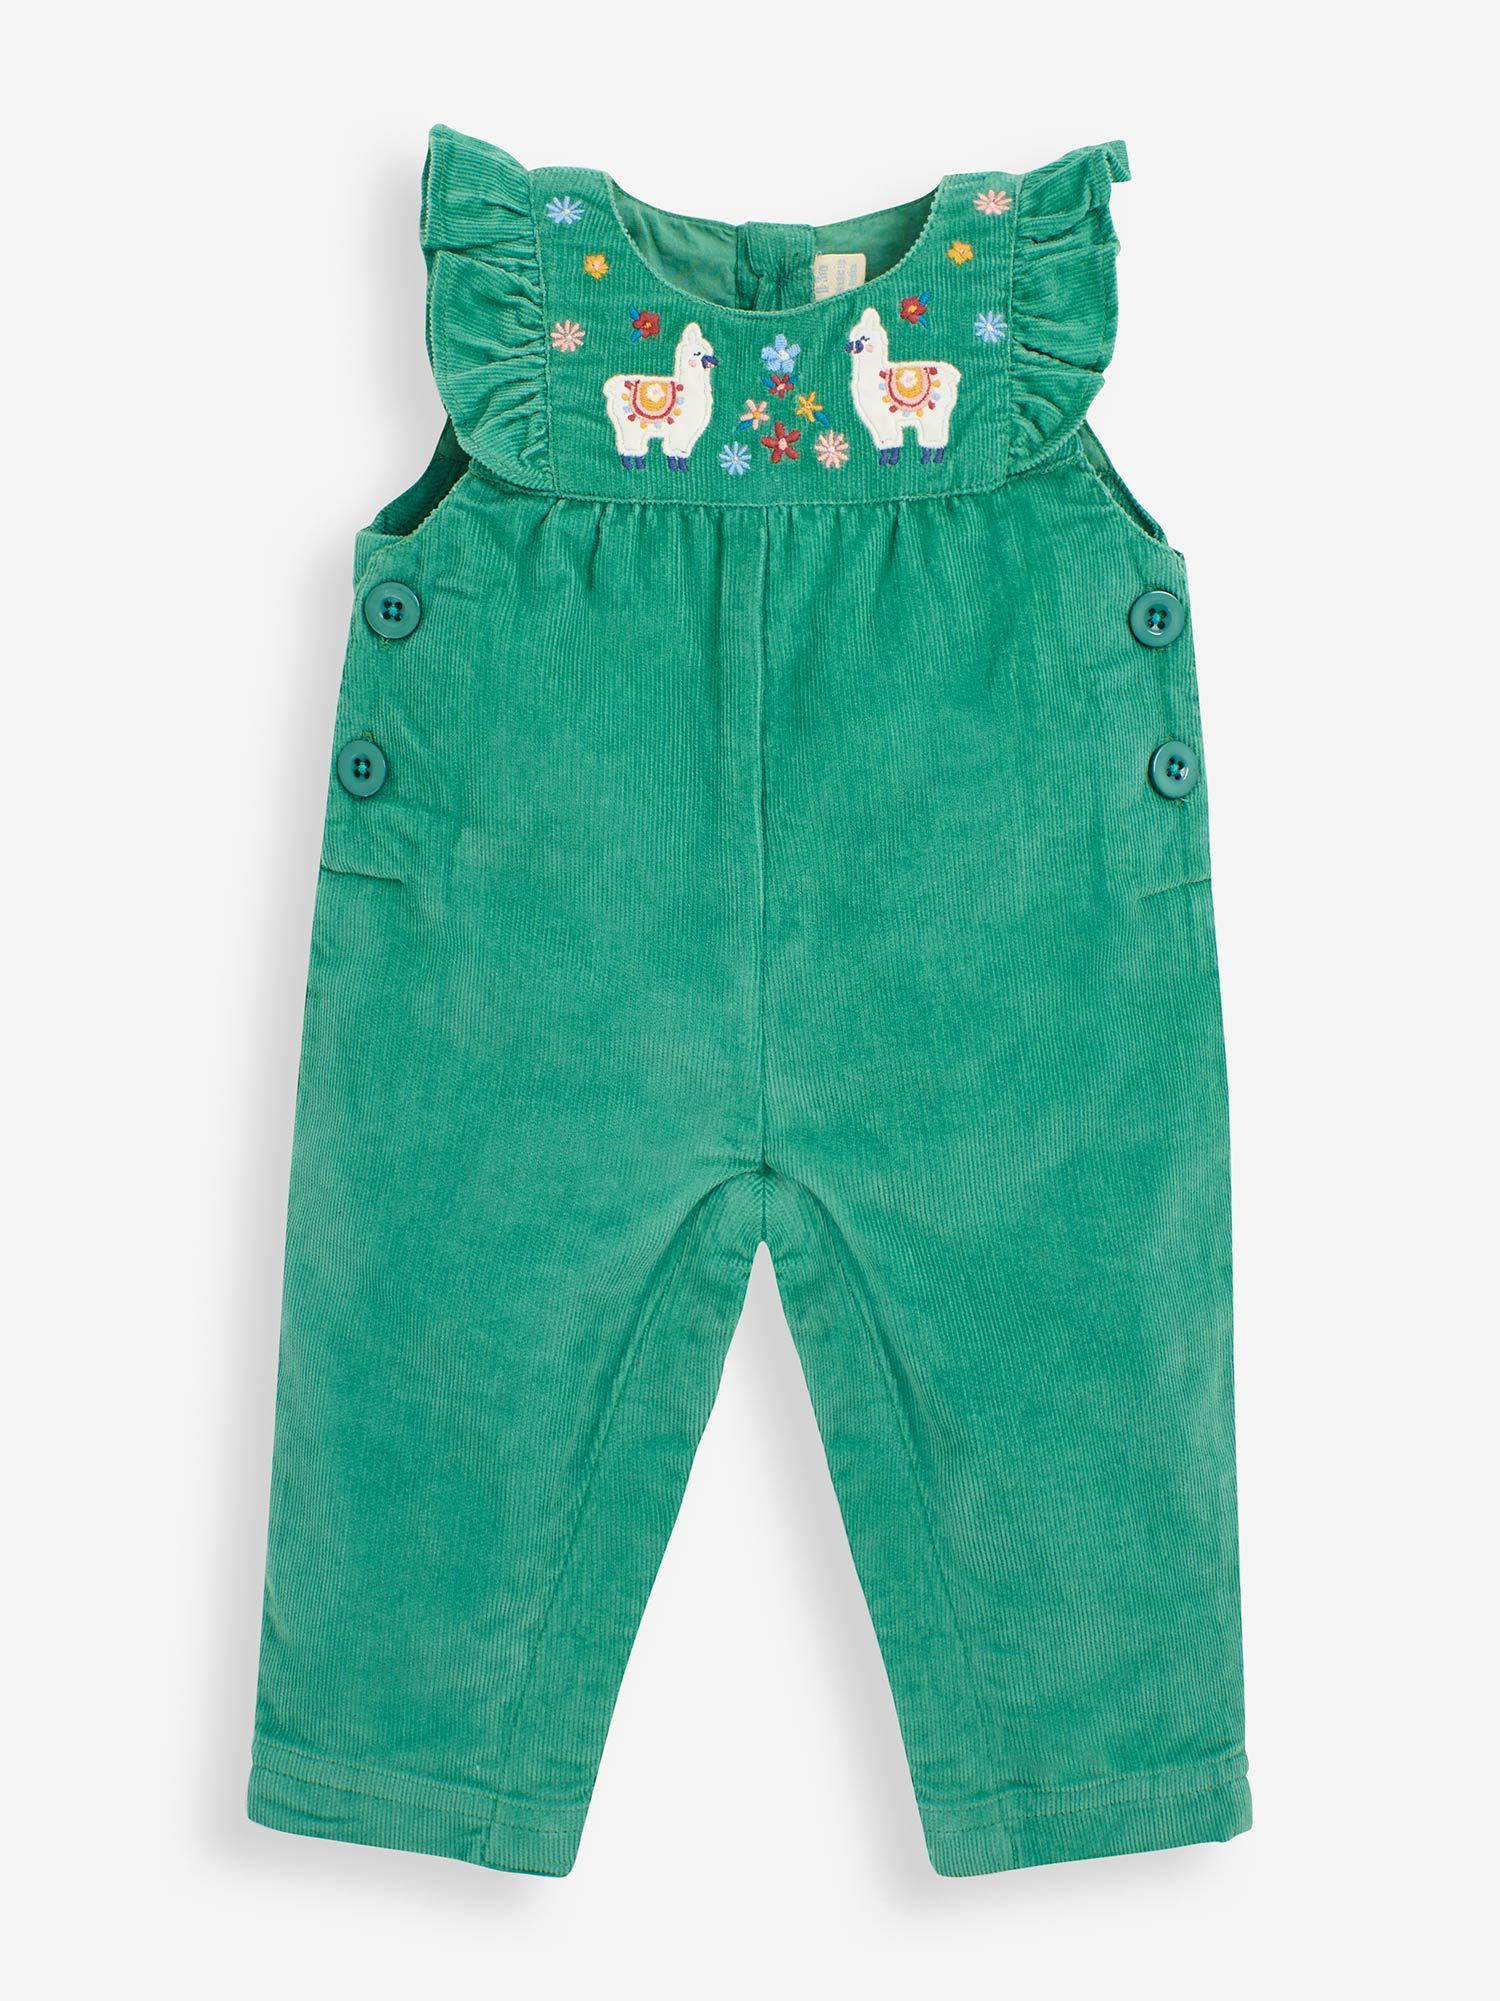 Llama Embroidered Cord Baby Dungarees